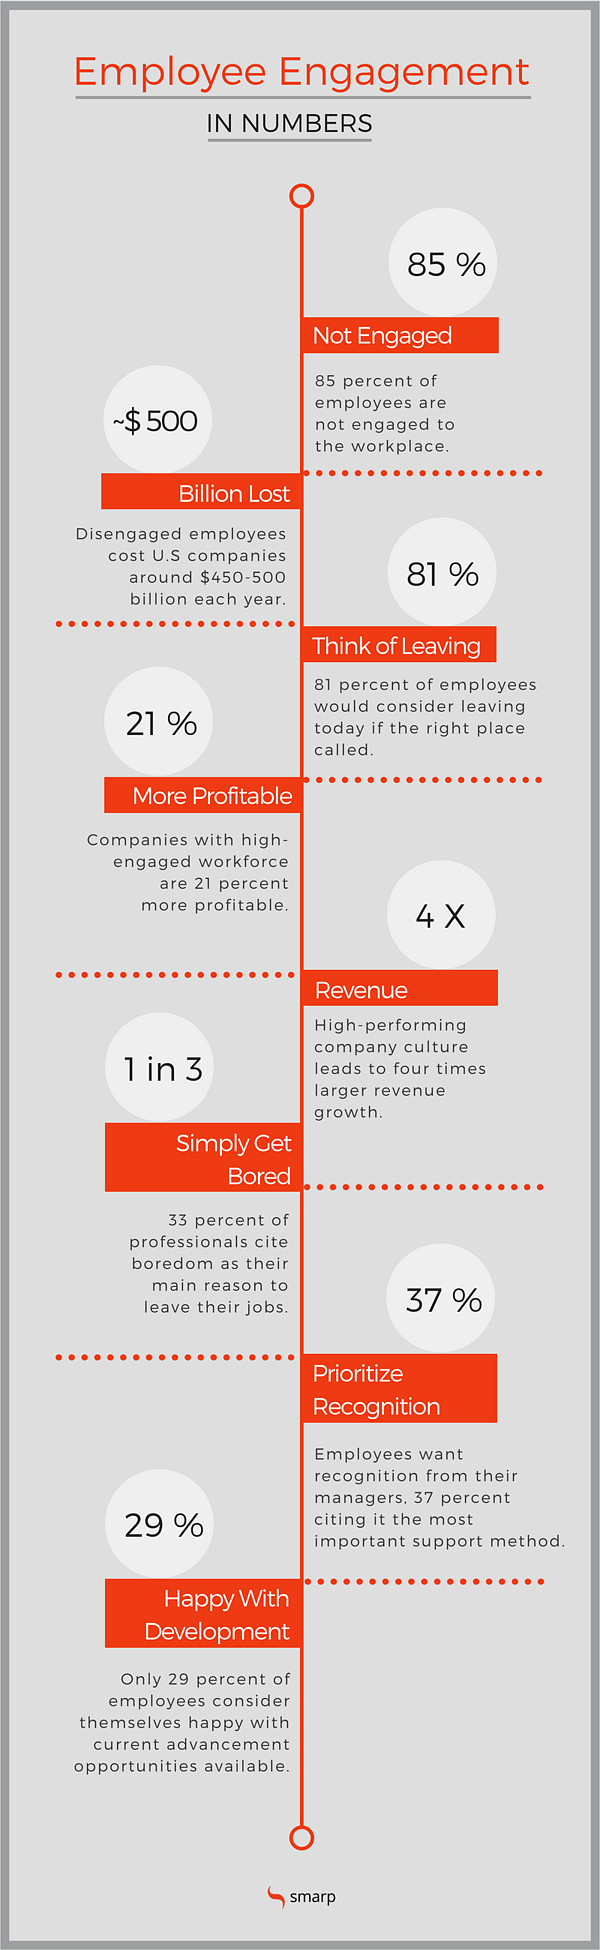 infographic: internal communications and employee engagement